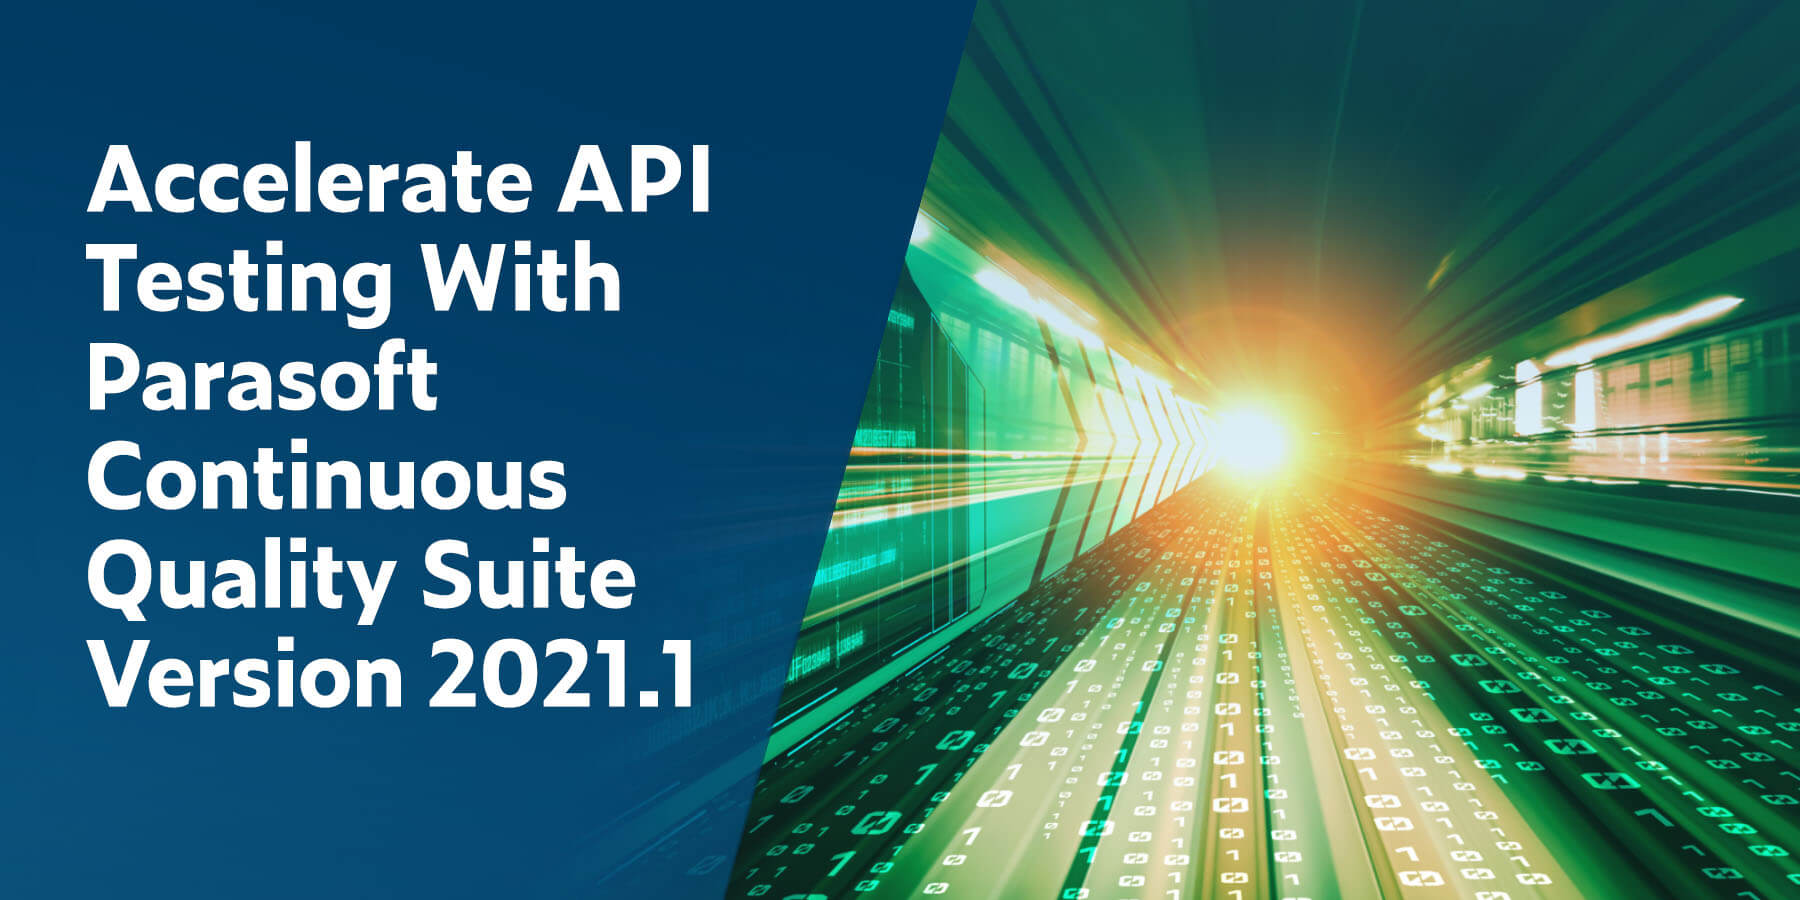 Accelerate API Testing With Parasoft Continuous Quality Suite Version 2021.1